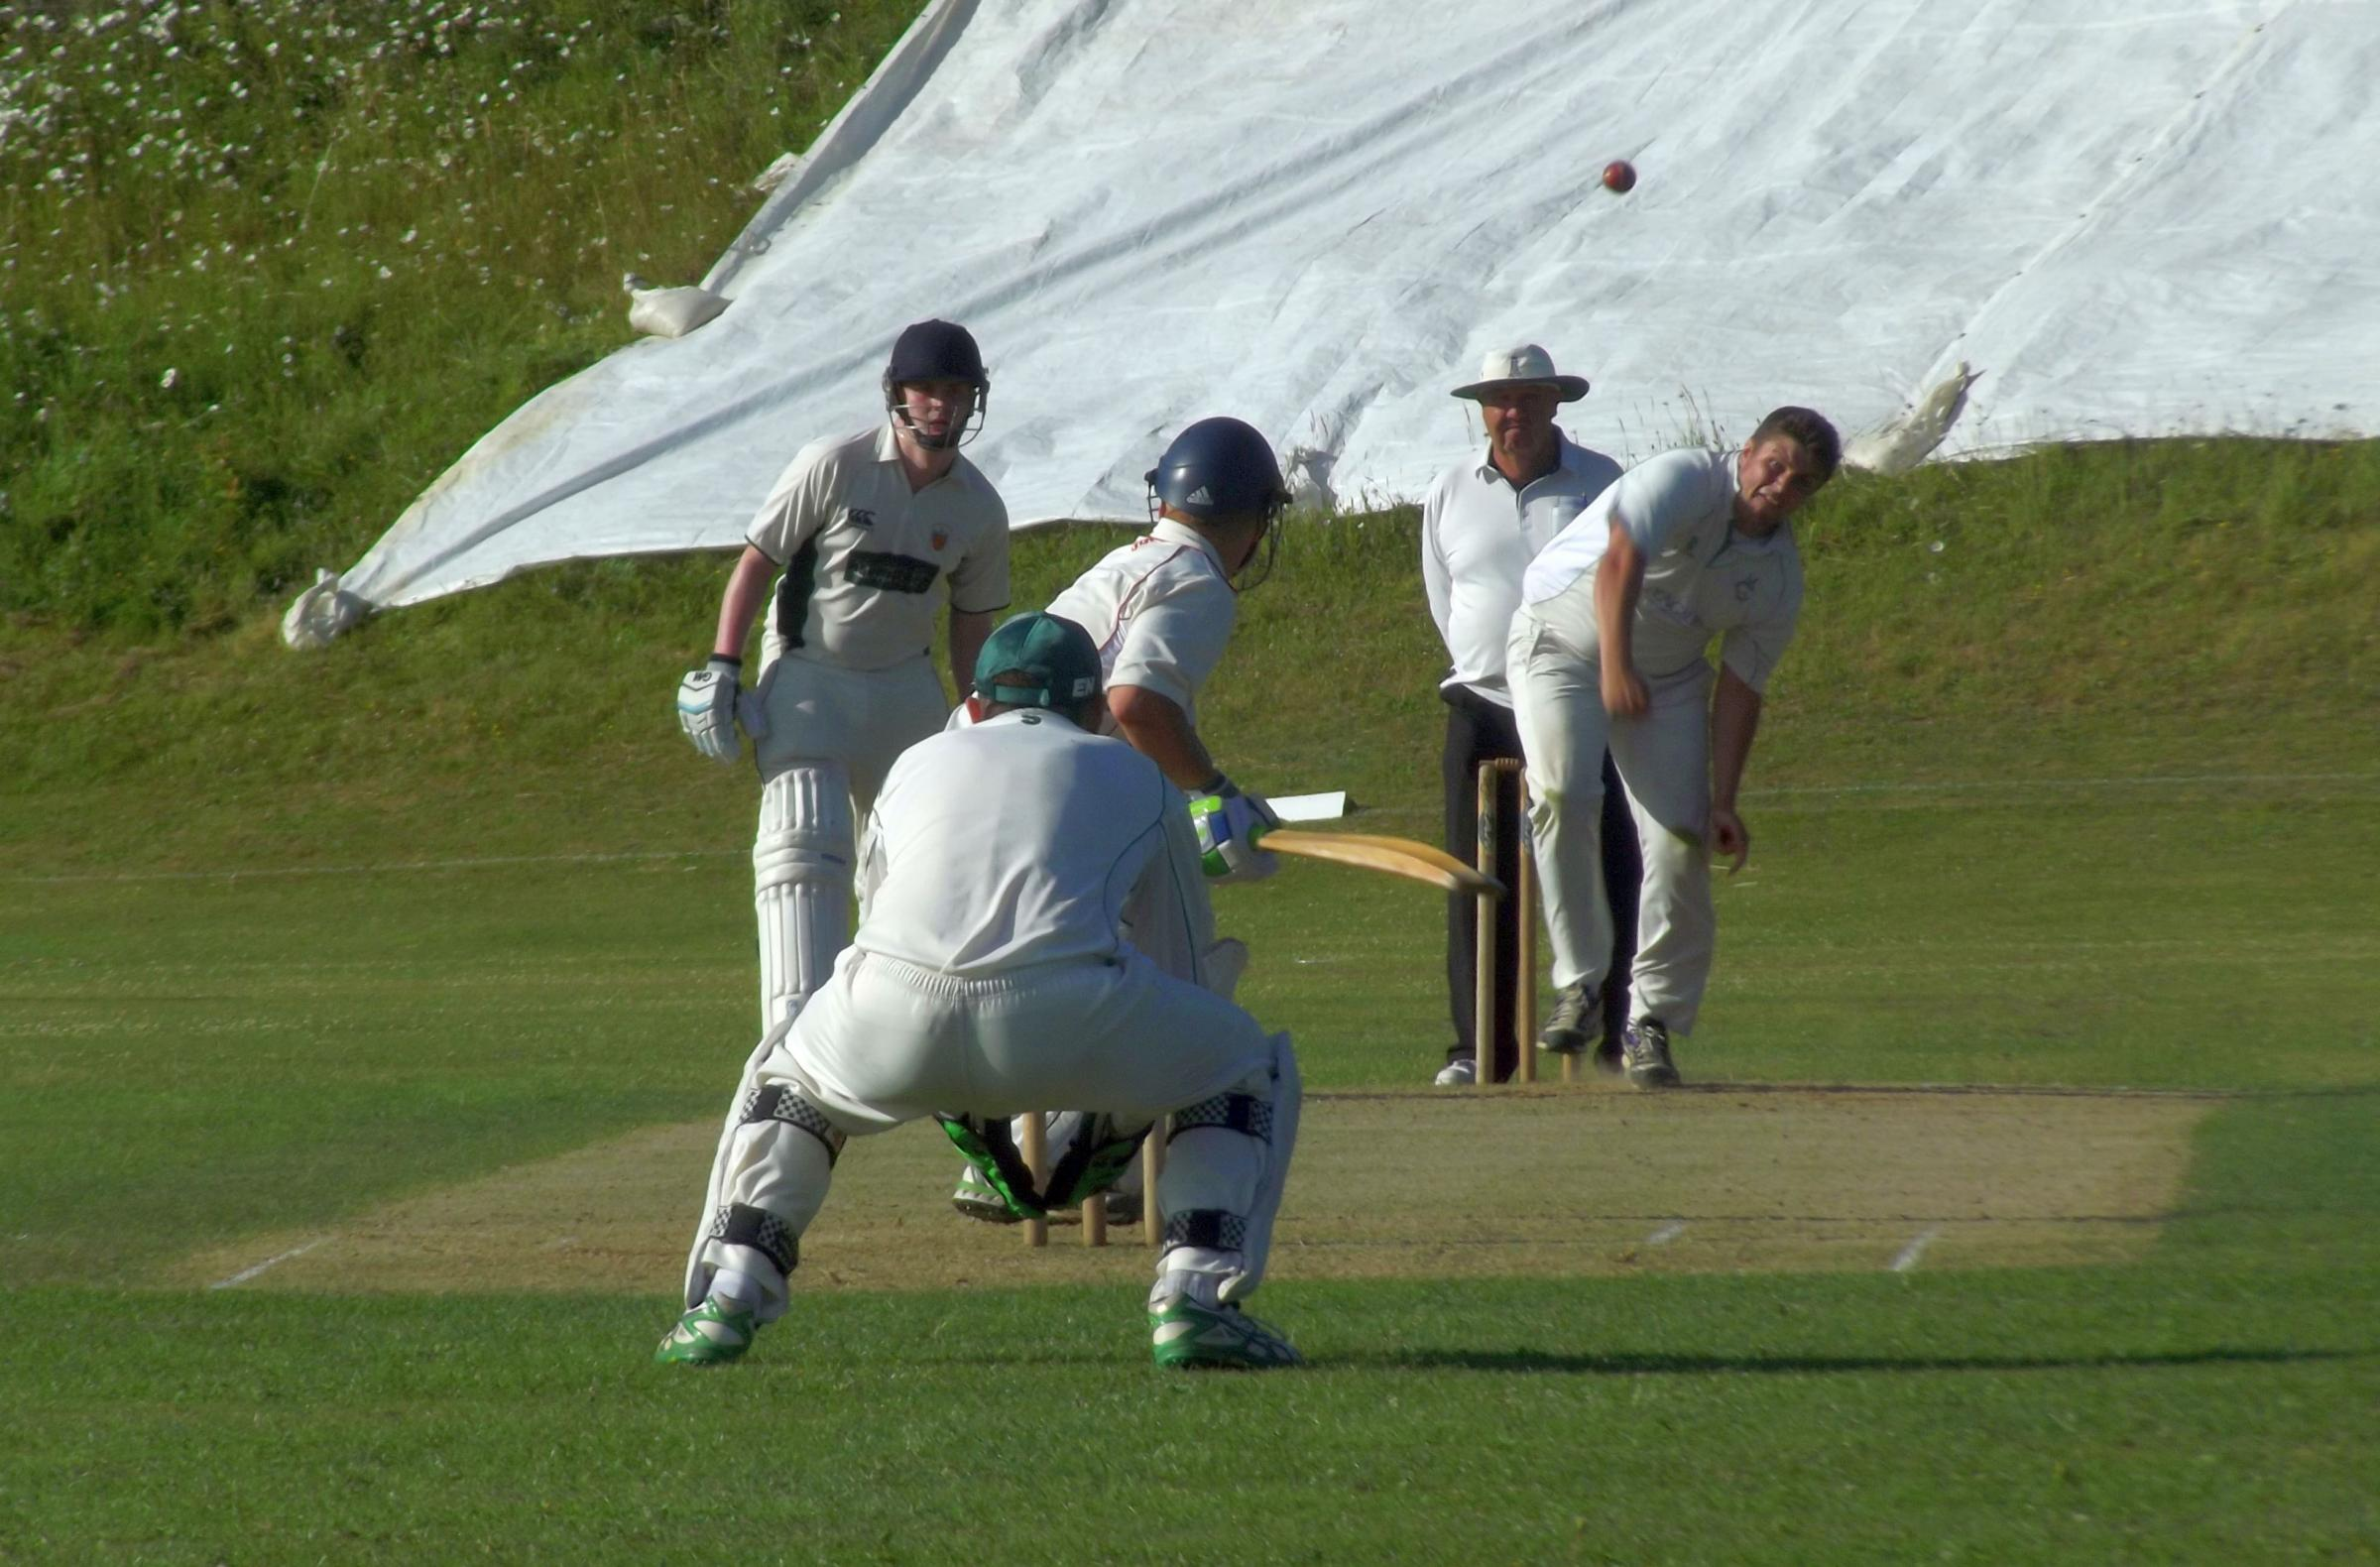 WICKET HUNT: Sam Kershaw bowling for the home side at the Dorchester middle order.